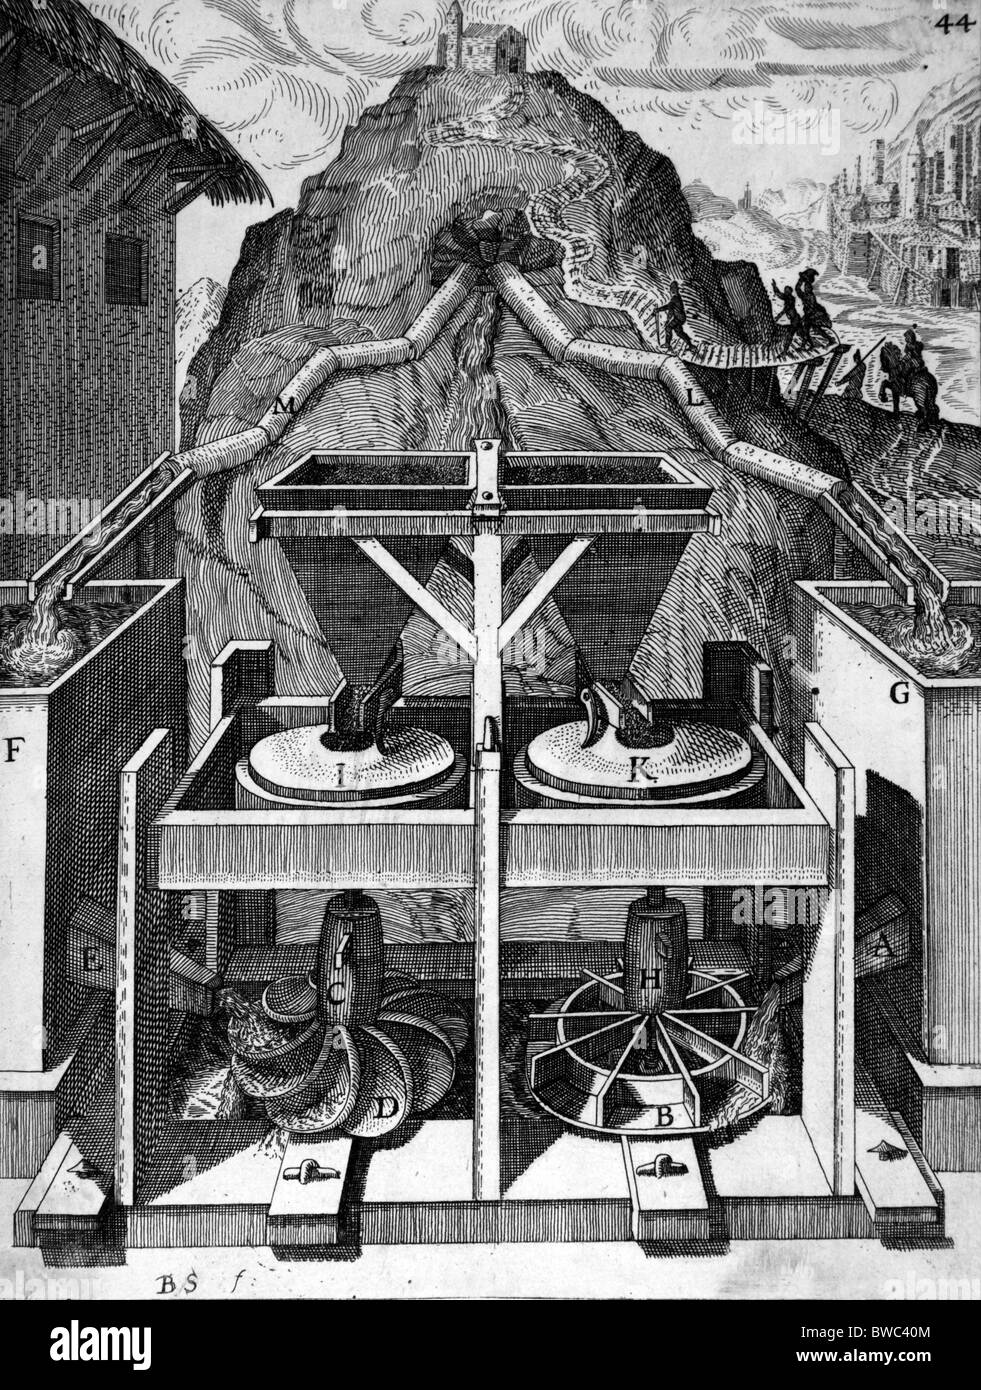 Illustration from Theatrum Machinarum Novum 1661 by Georg Andreas Böckler;  A flour grinding mill powered by water